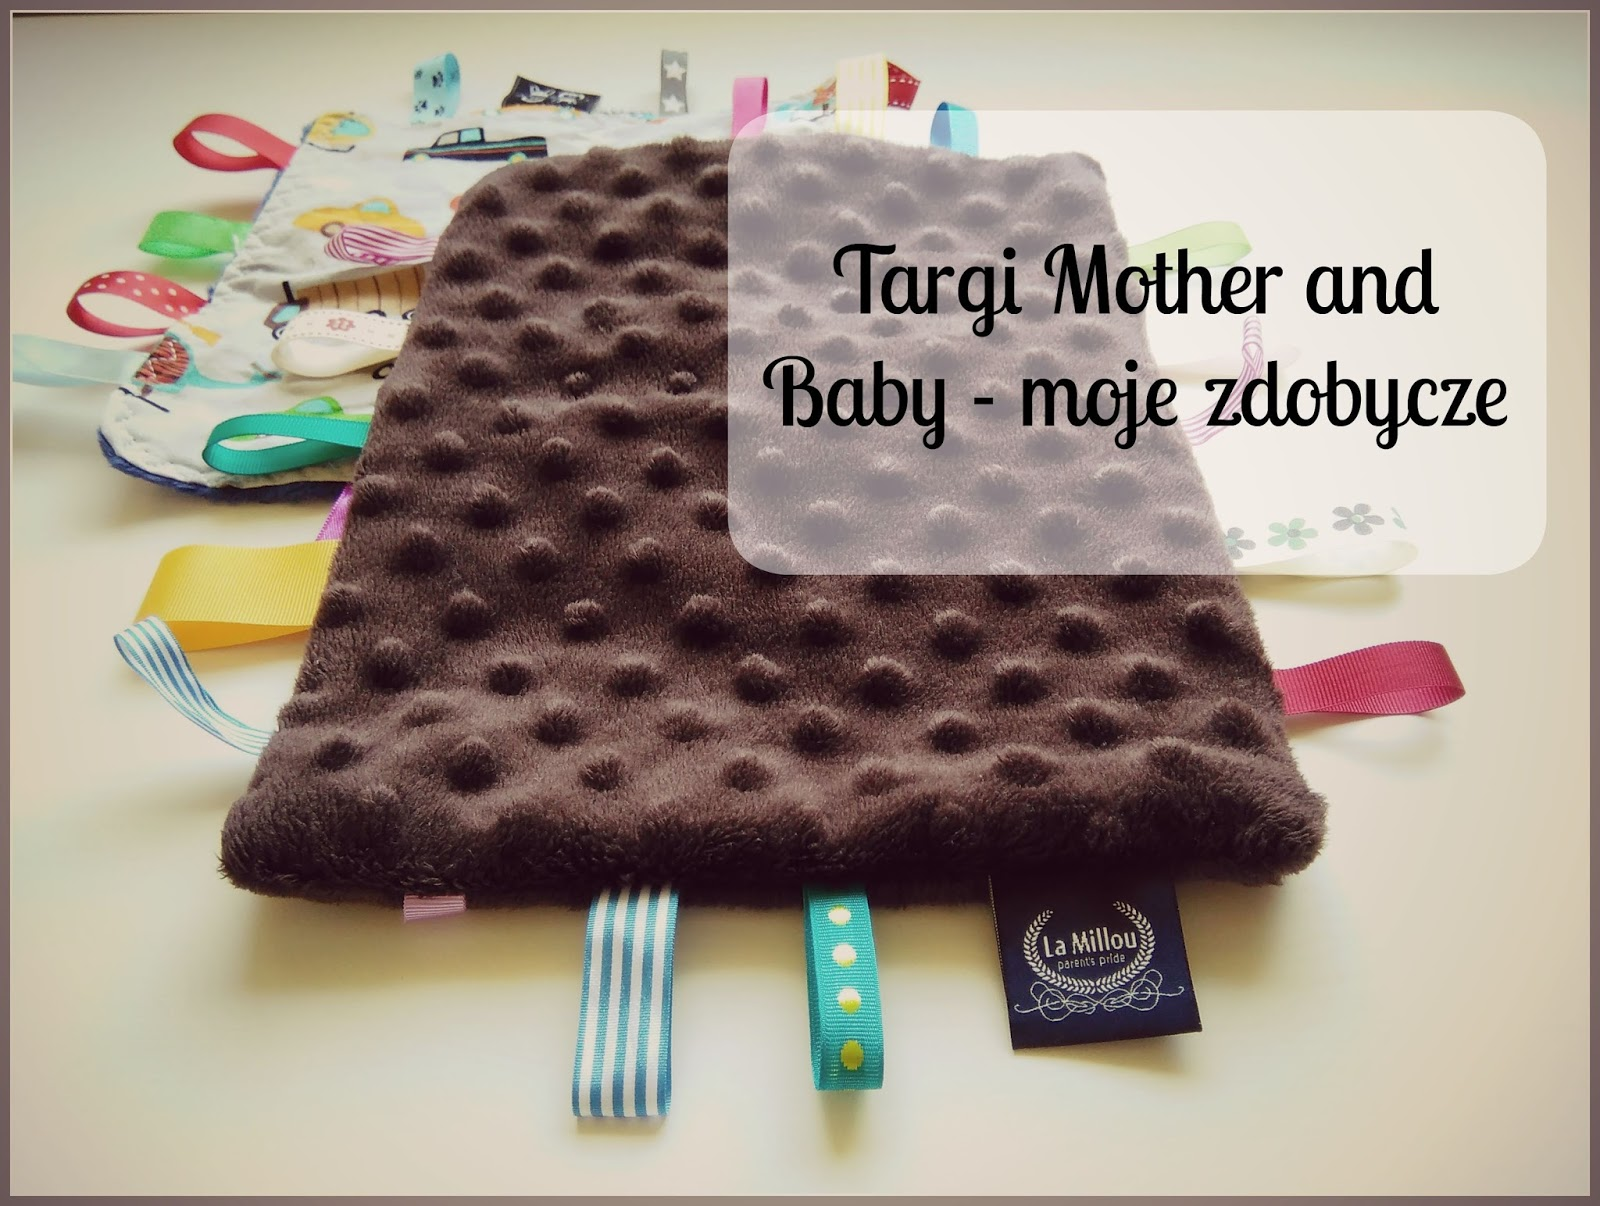 Targi Mother and Baby